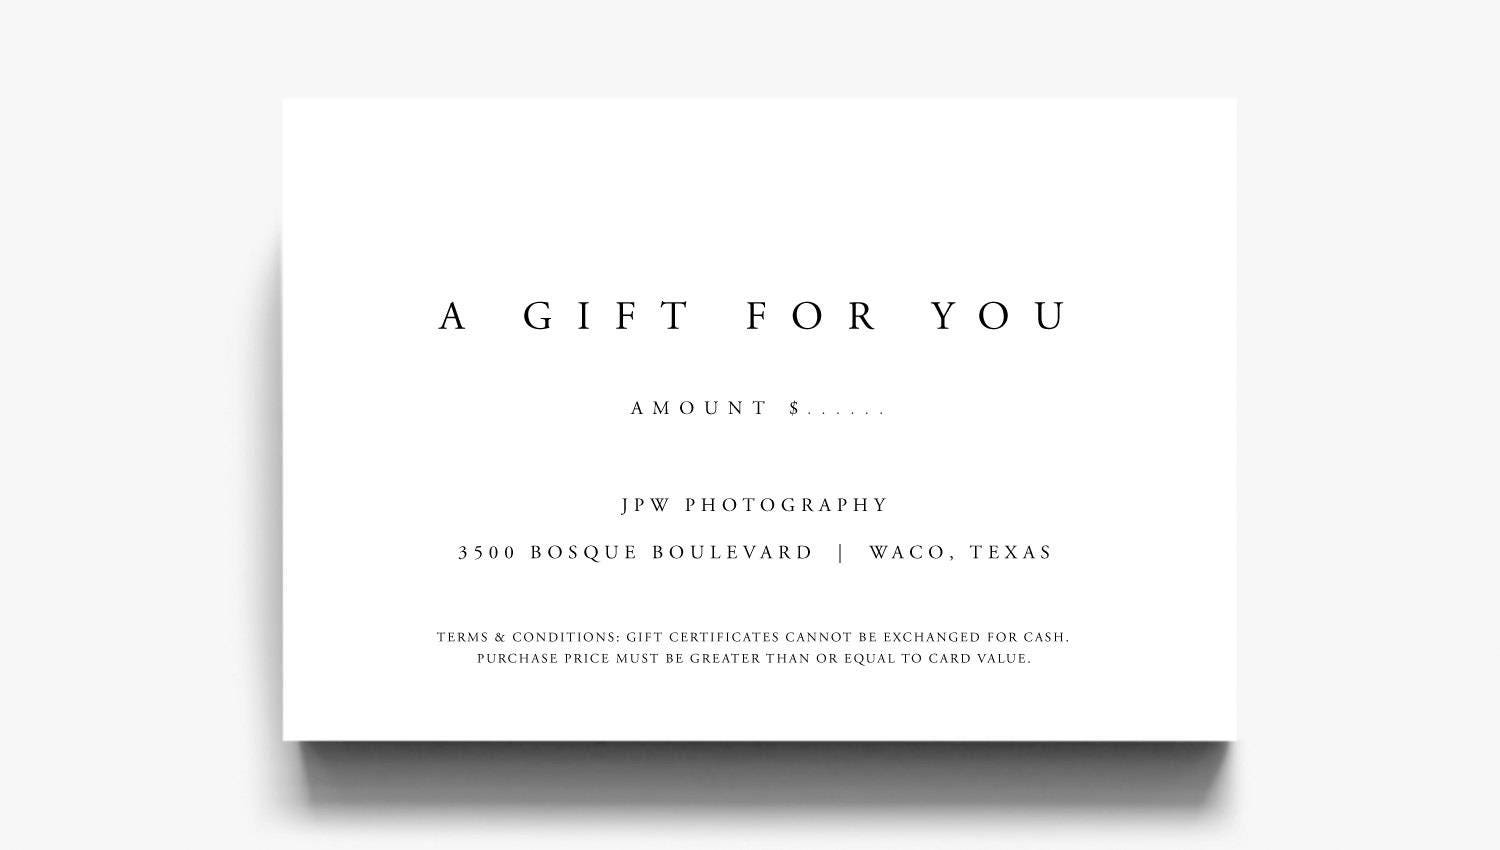 Gift certificate template a gift for you gift voucher zoom xflitez Gallery